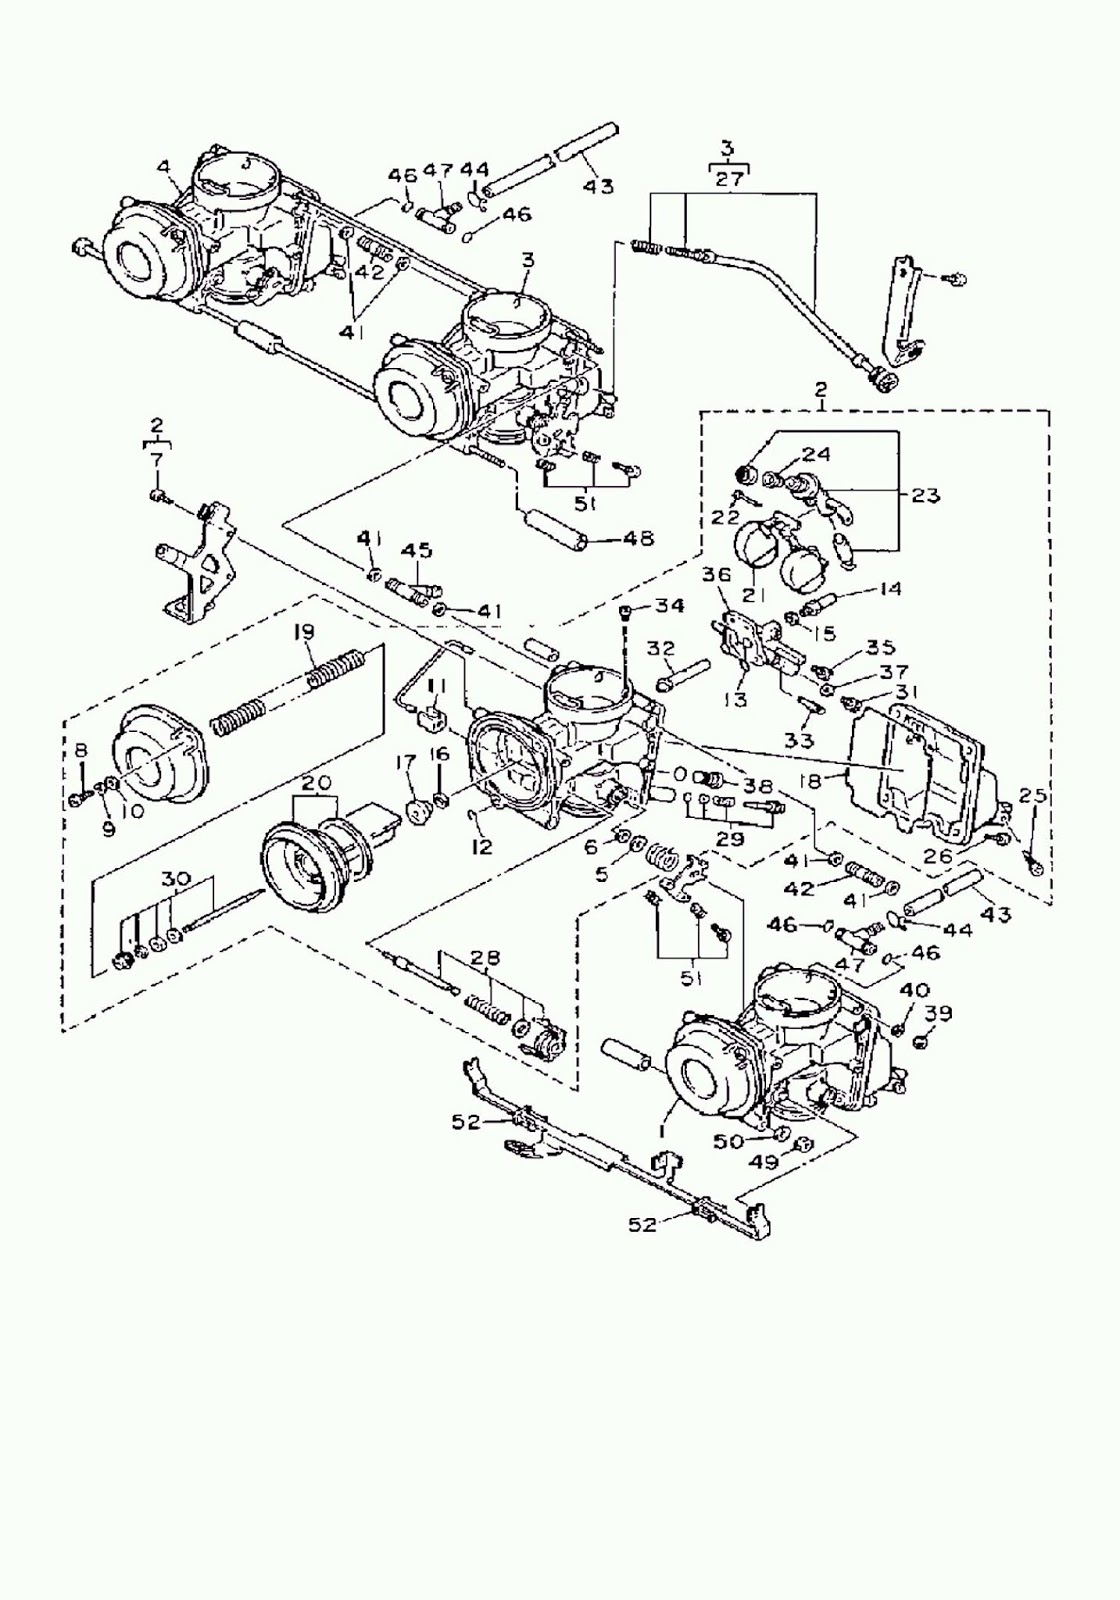 Yamaha Fzr600 Carburetor Diagram Oem